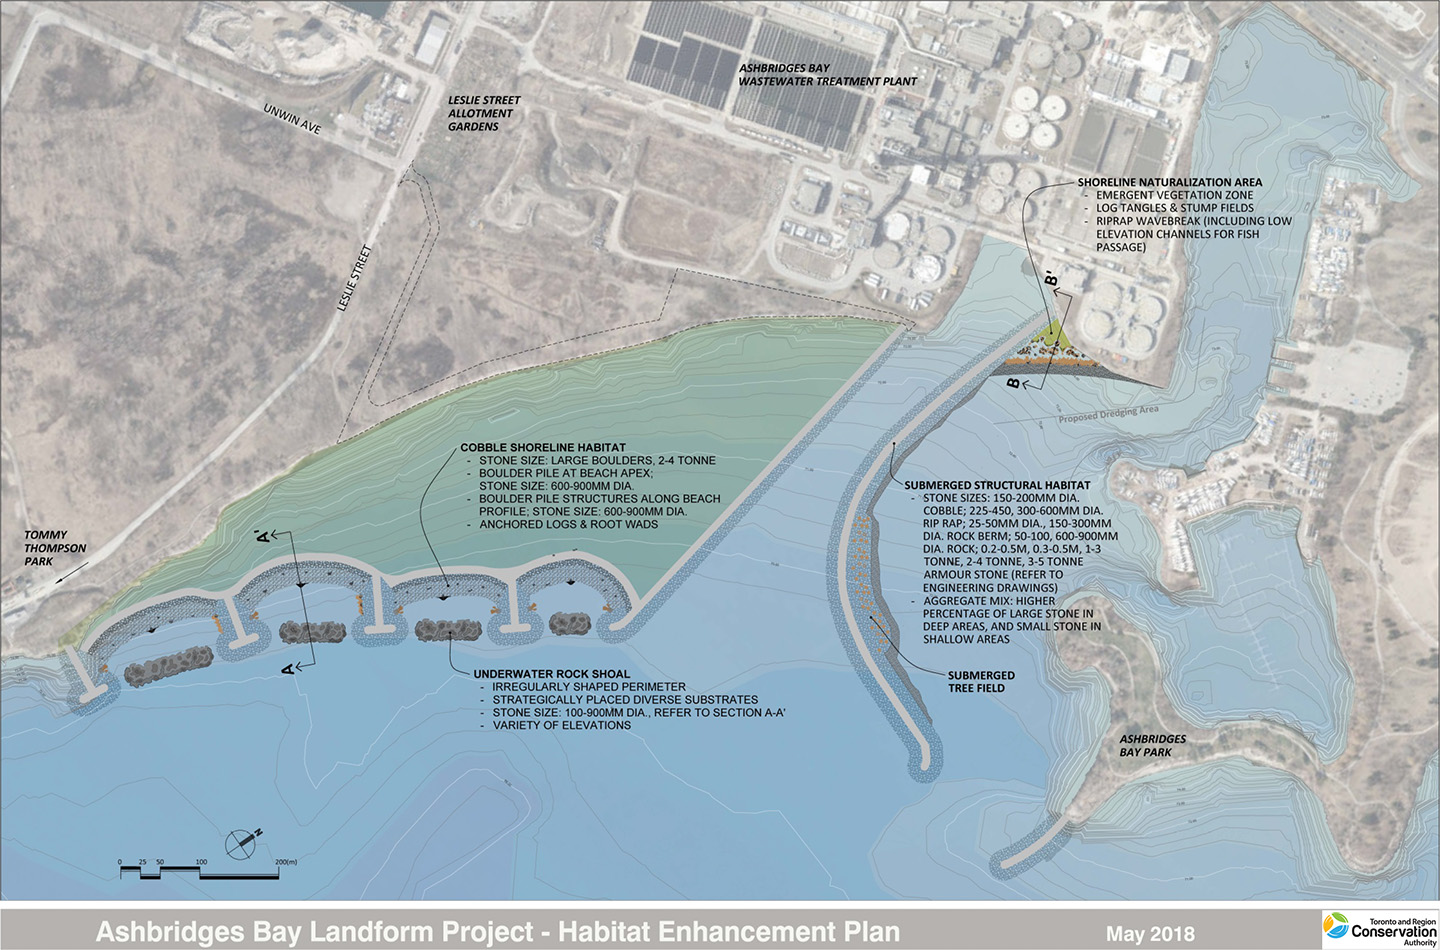 Ashbridges Bay Landform Project habitat enhancement plan